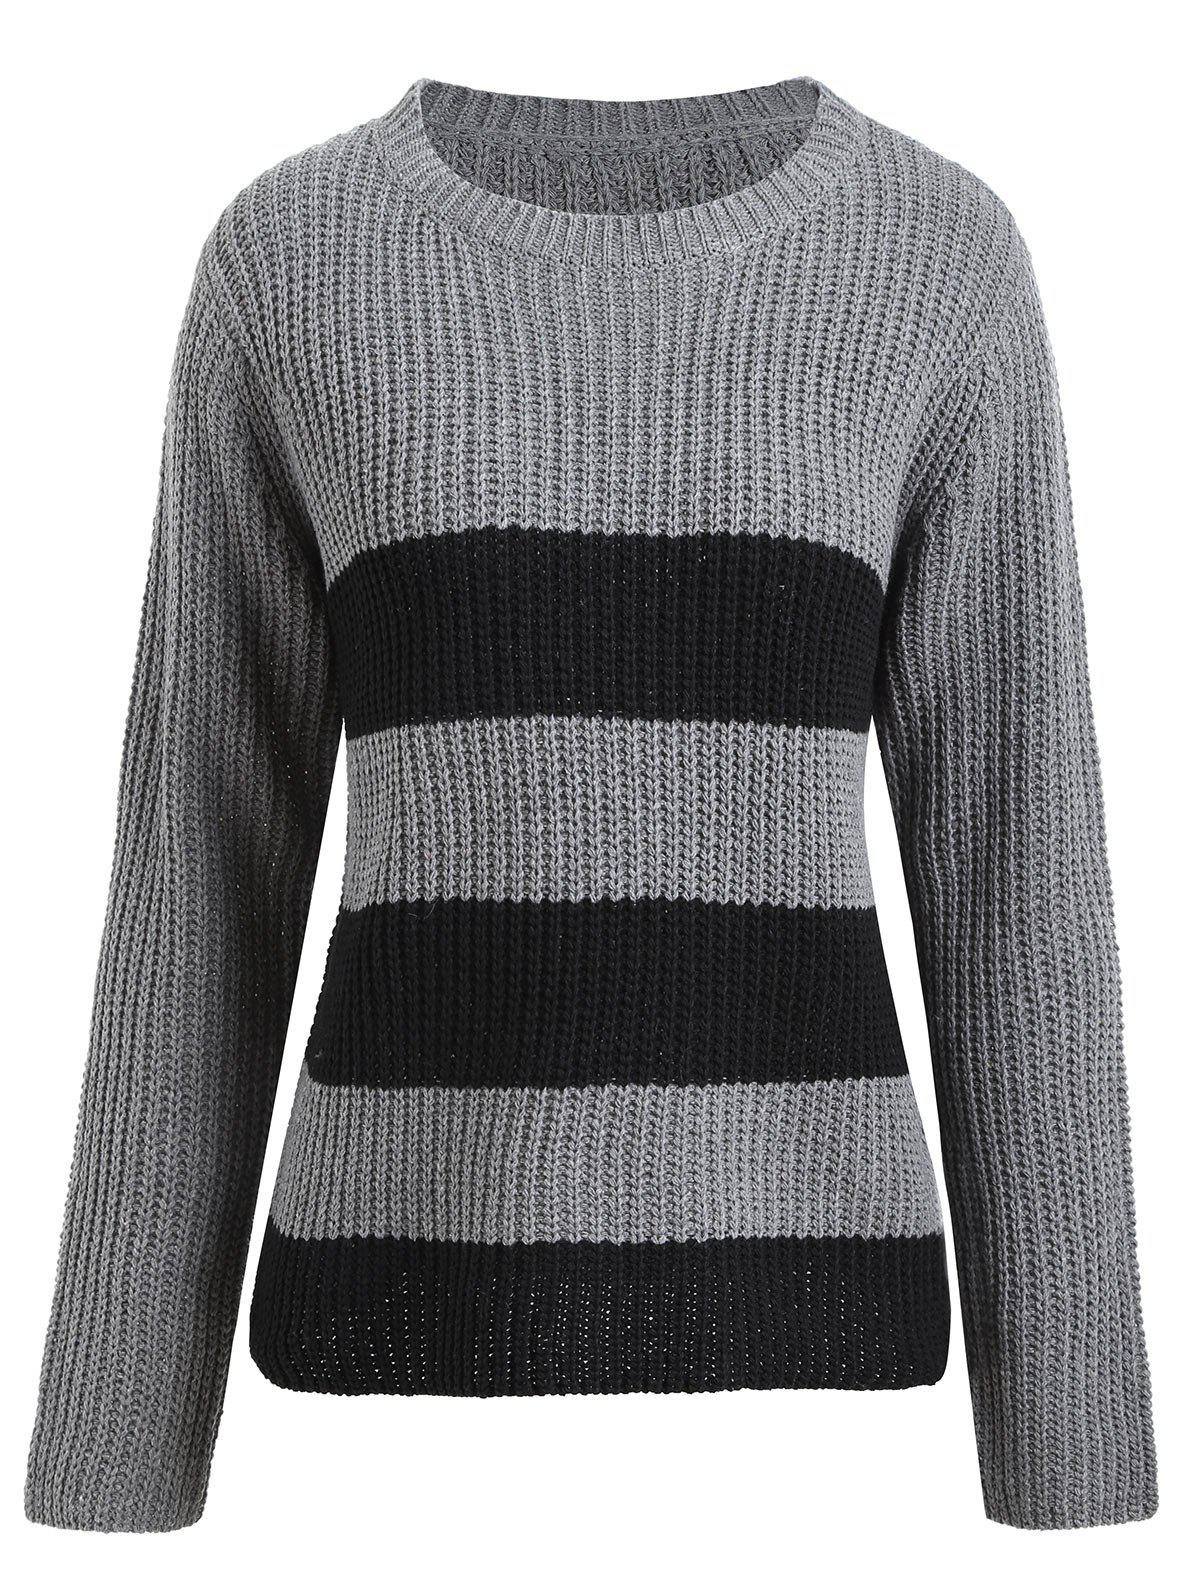 Plus Size Striped Ribbed Sweater 224549001